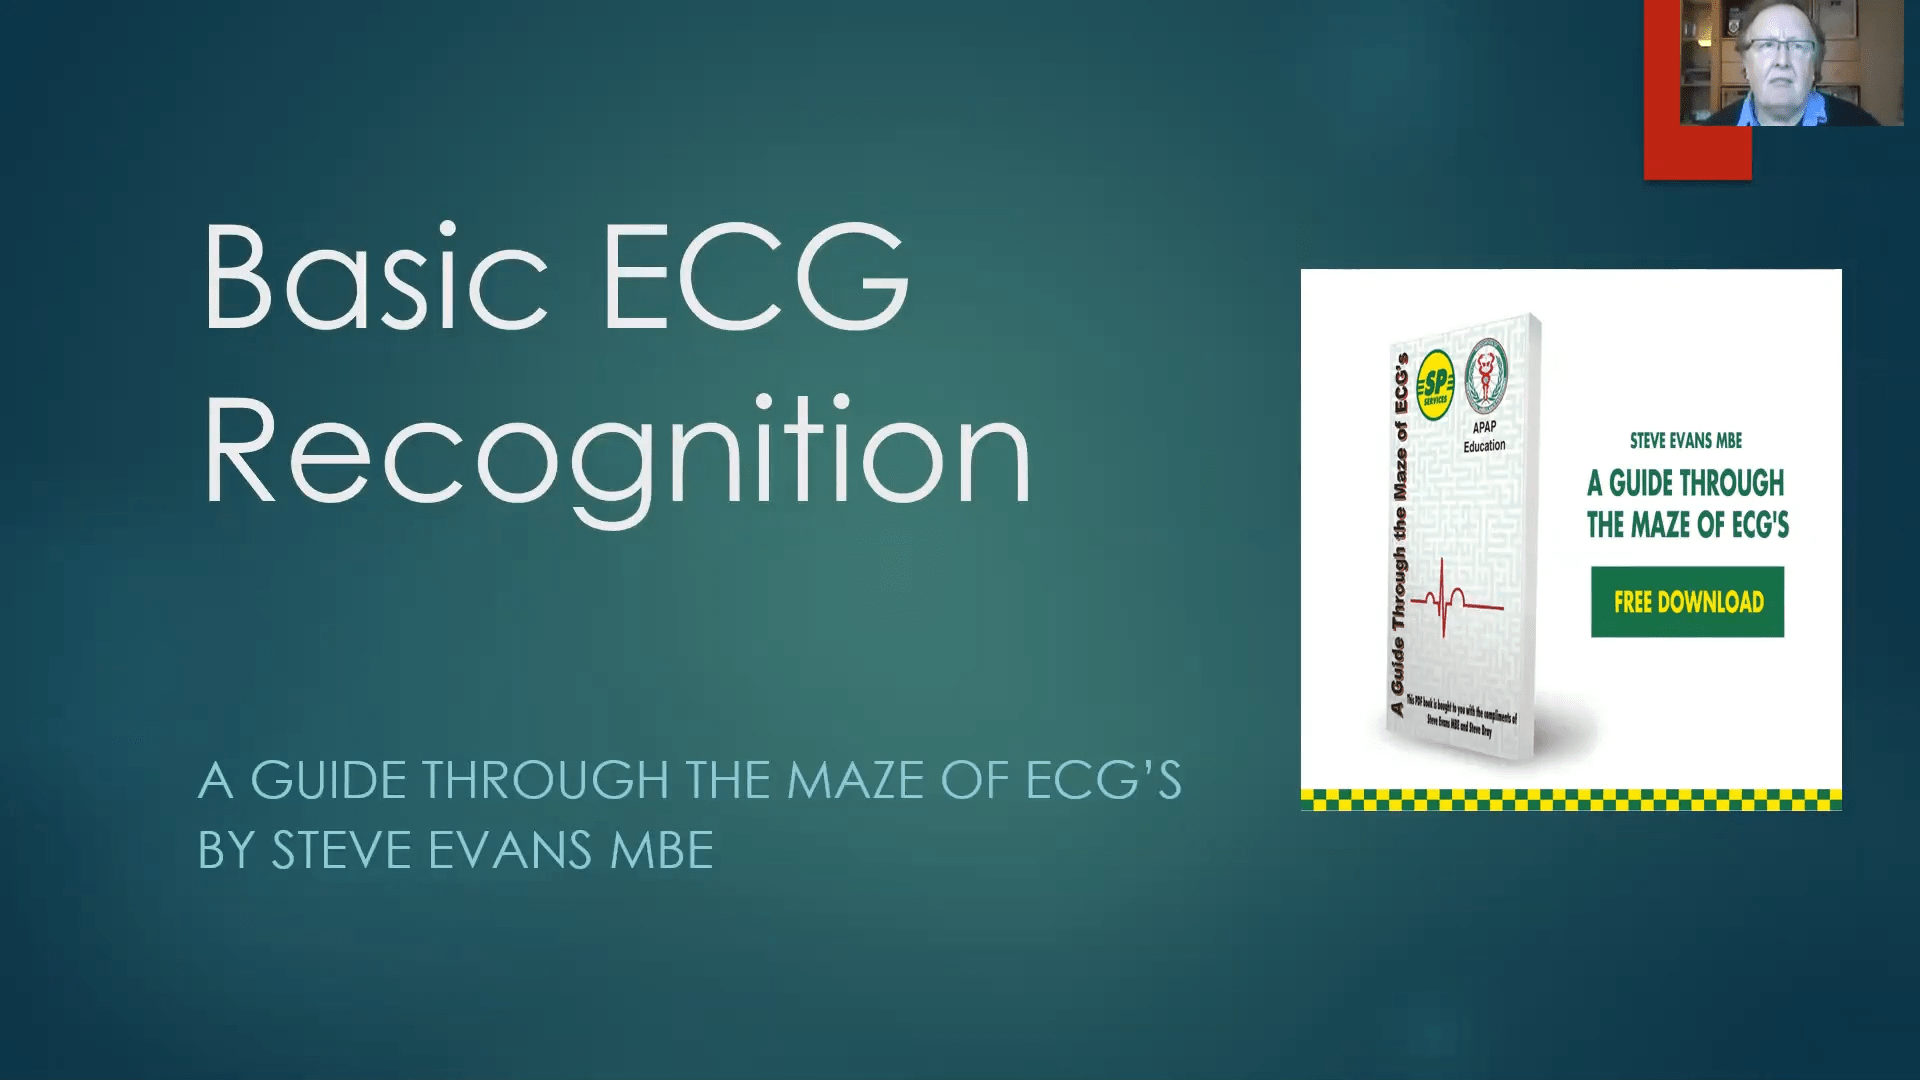 Steve Evans MBE – A Guide to ECG's